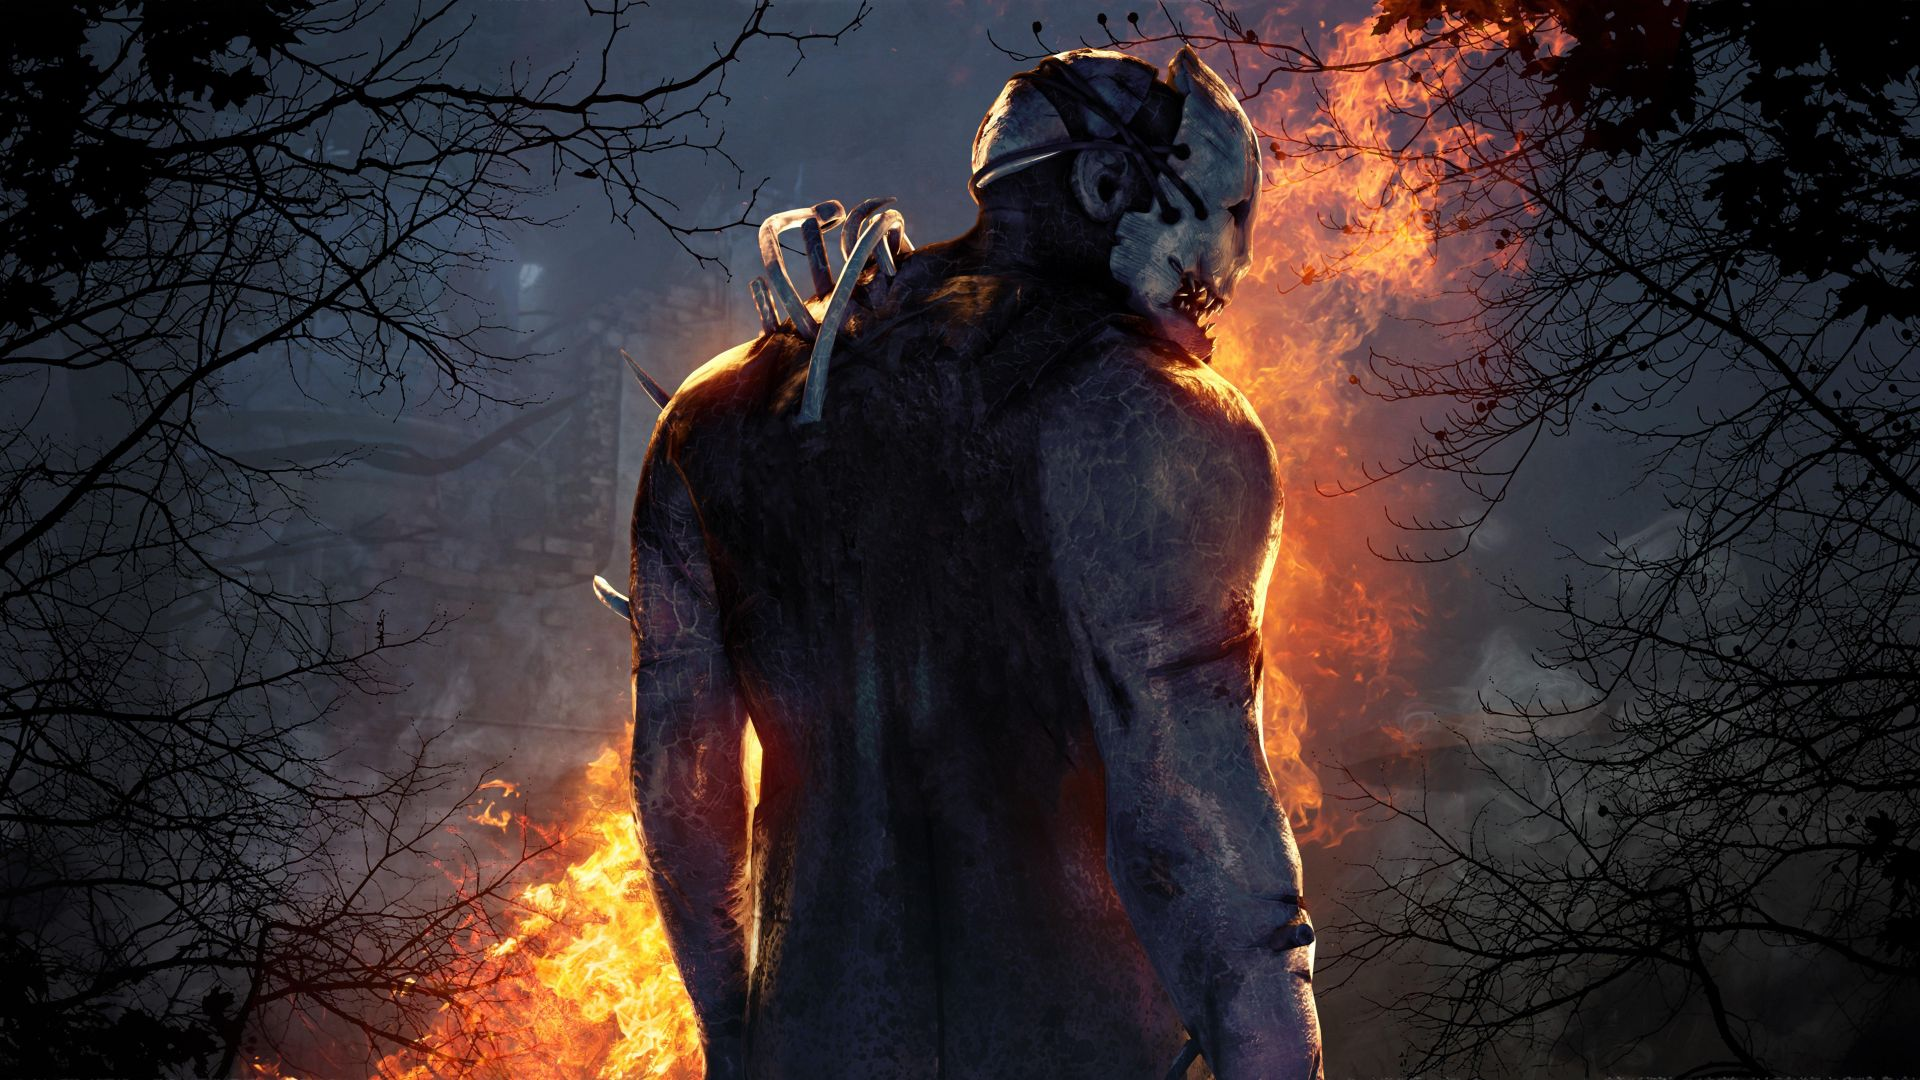 Dead by Daylight, Trapper, best games, PC, PS 4, Xbox One